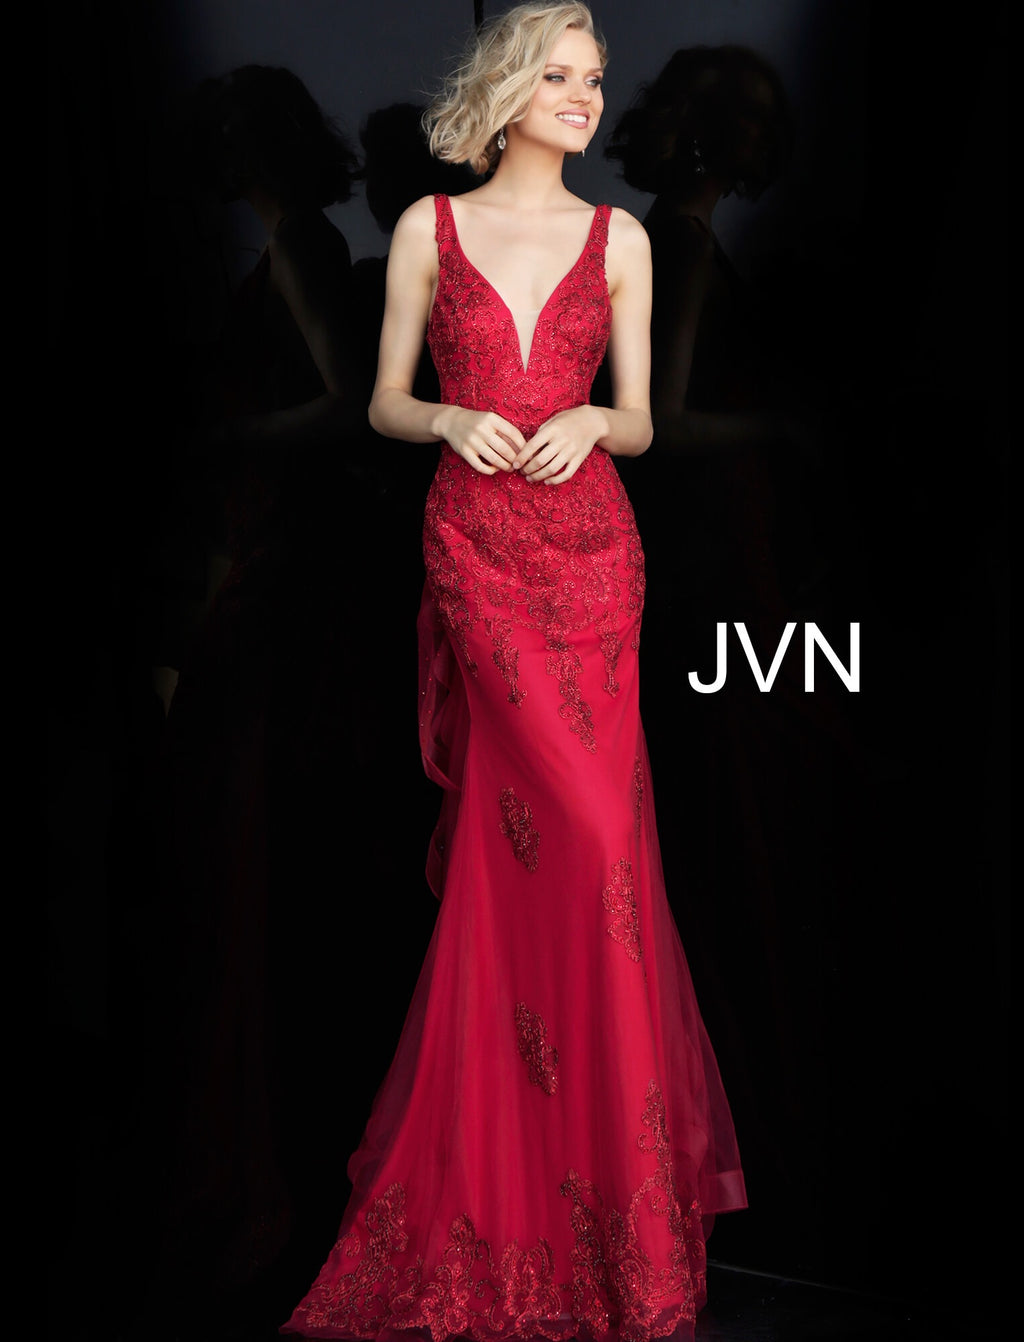 JVN by JOVANI Embellished Ruffle Back Fitted Prom Dres JVN53188 - CYC Boutique